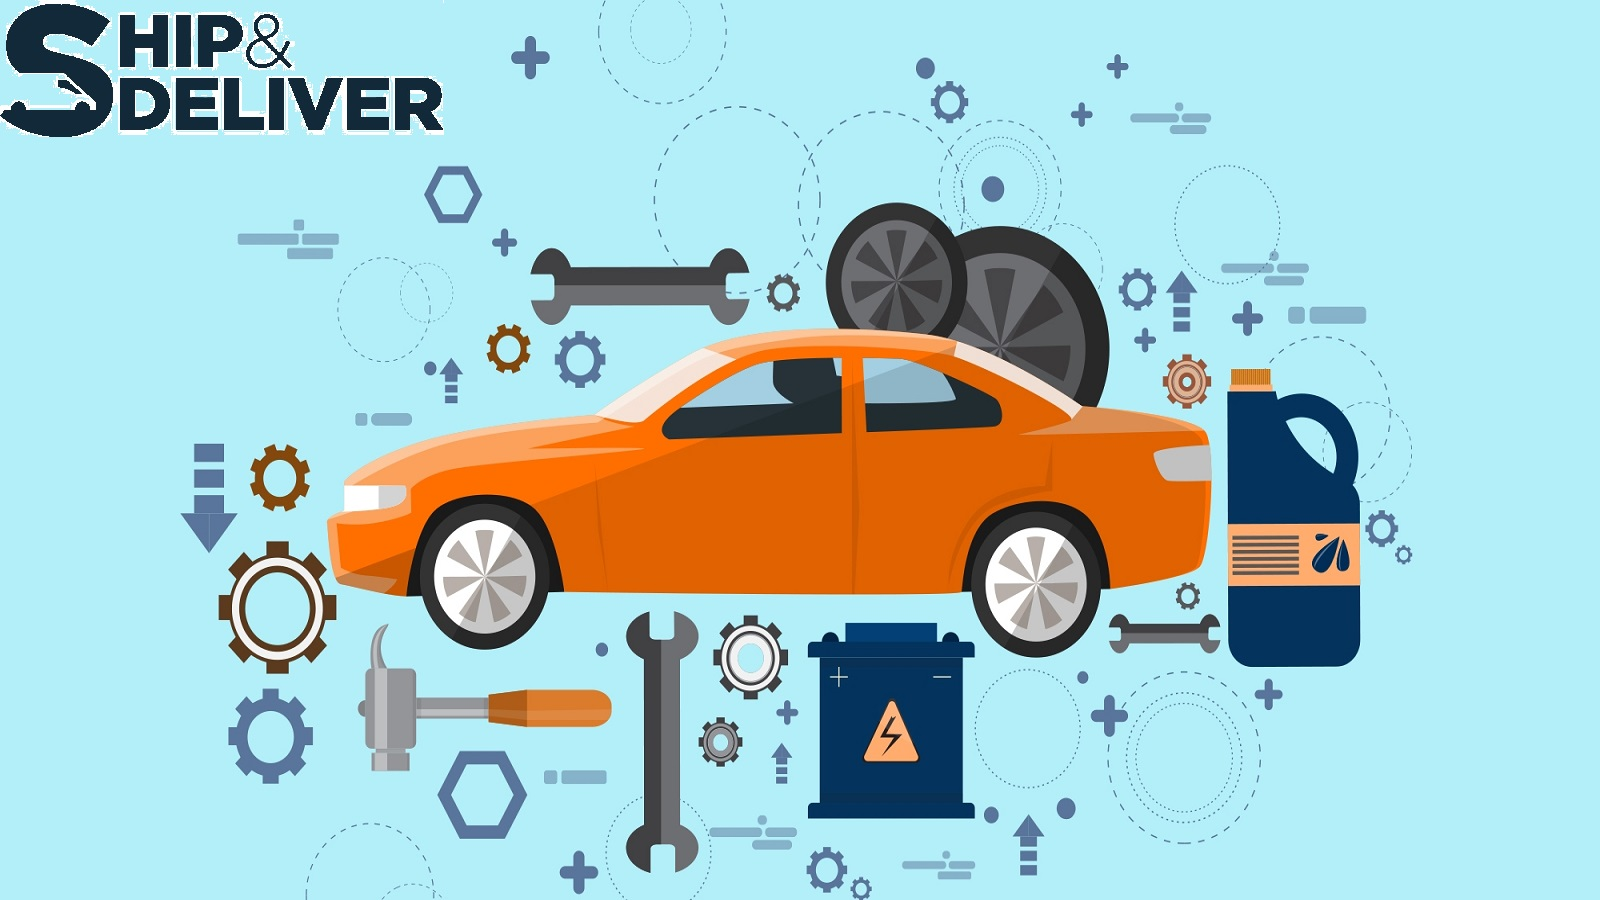 5 Summer Tips for your Car Care in 2021: Ship & Deliver